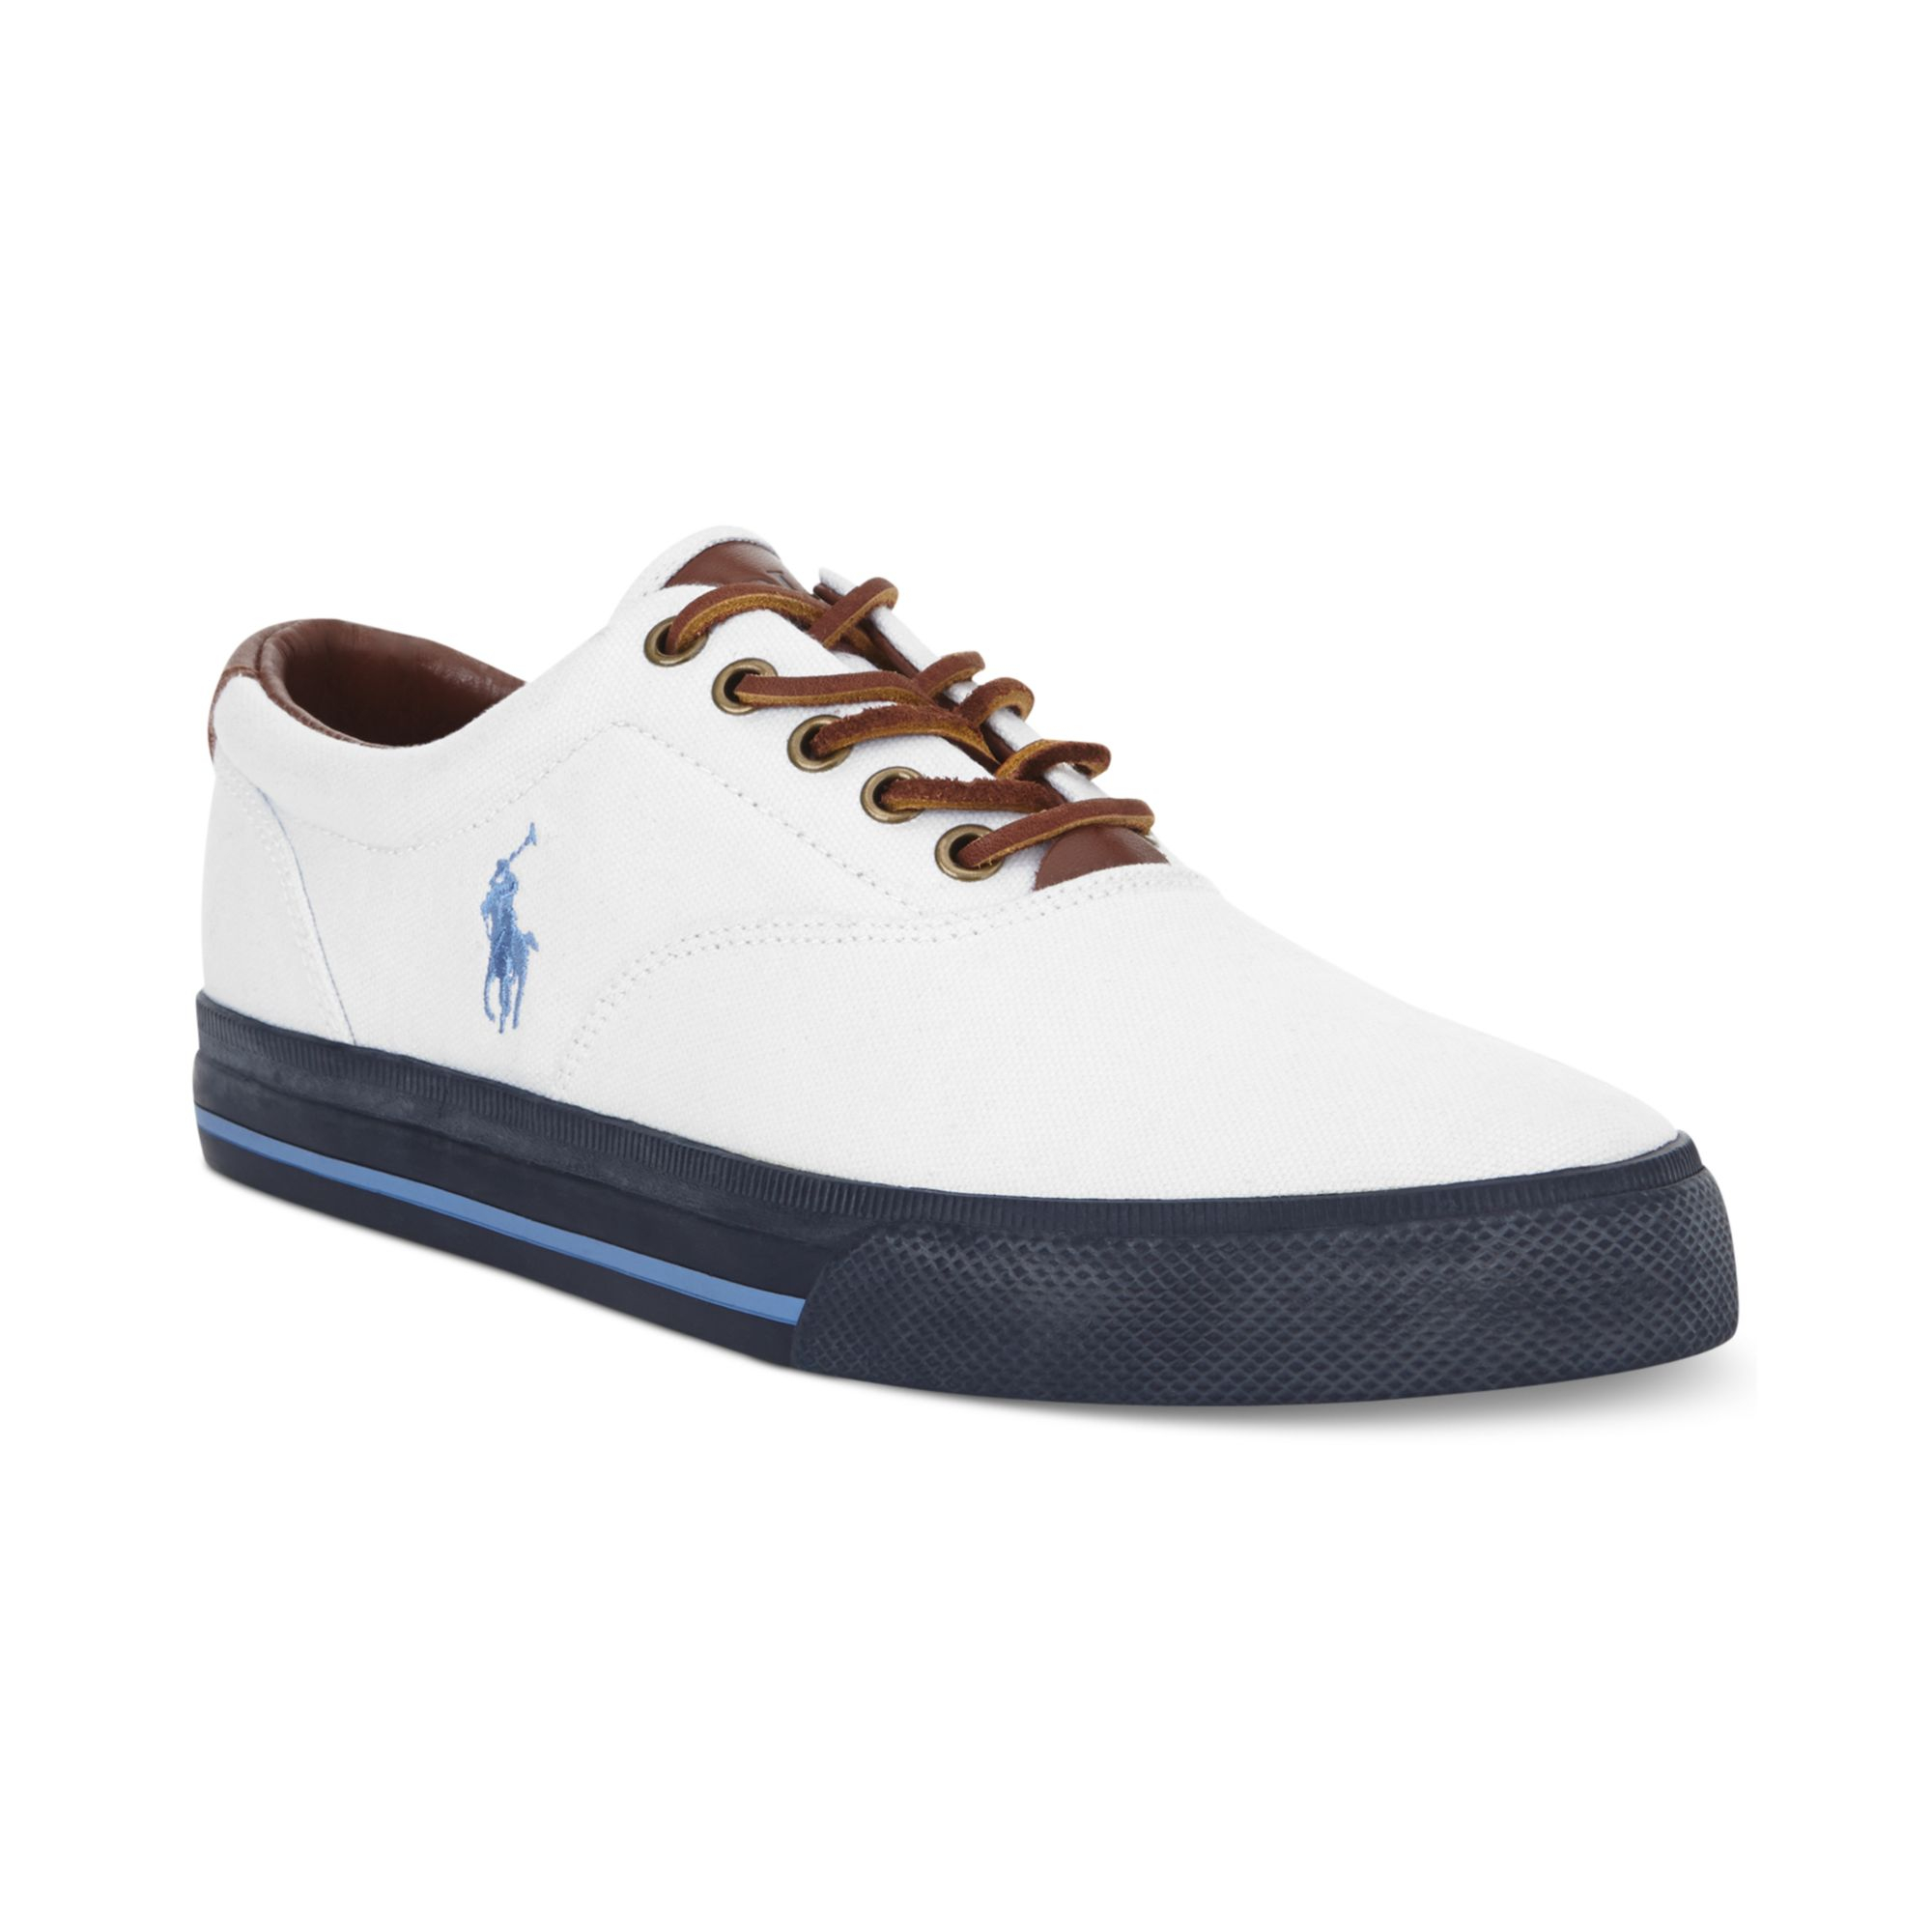 polo ralph lauren polo vaughn sneakers in white for men lyst. Black Bedroom Furniture Sets. Home Design Ideas